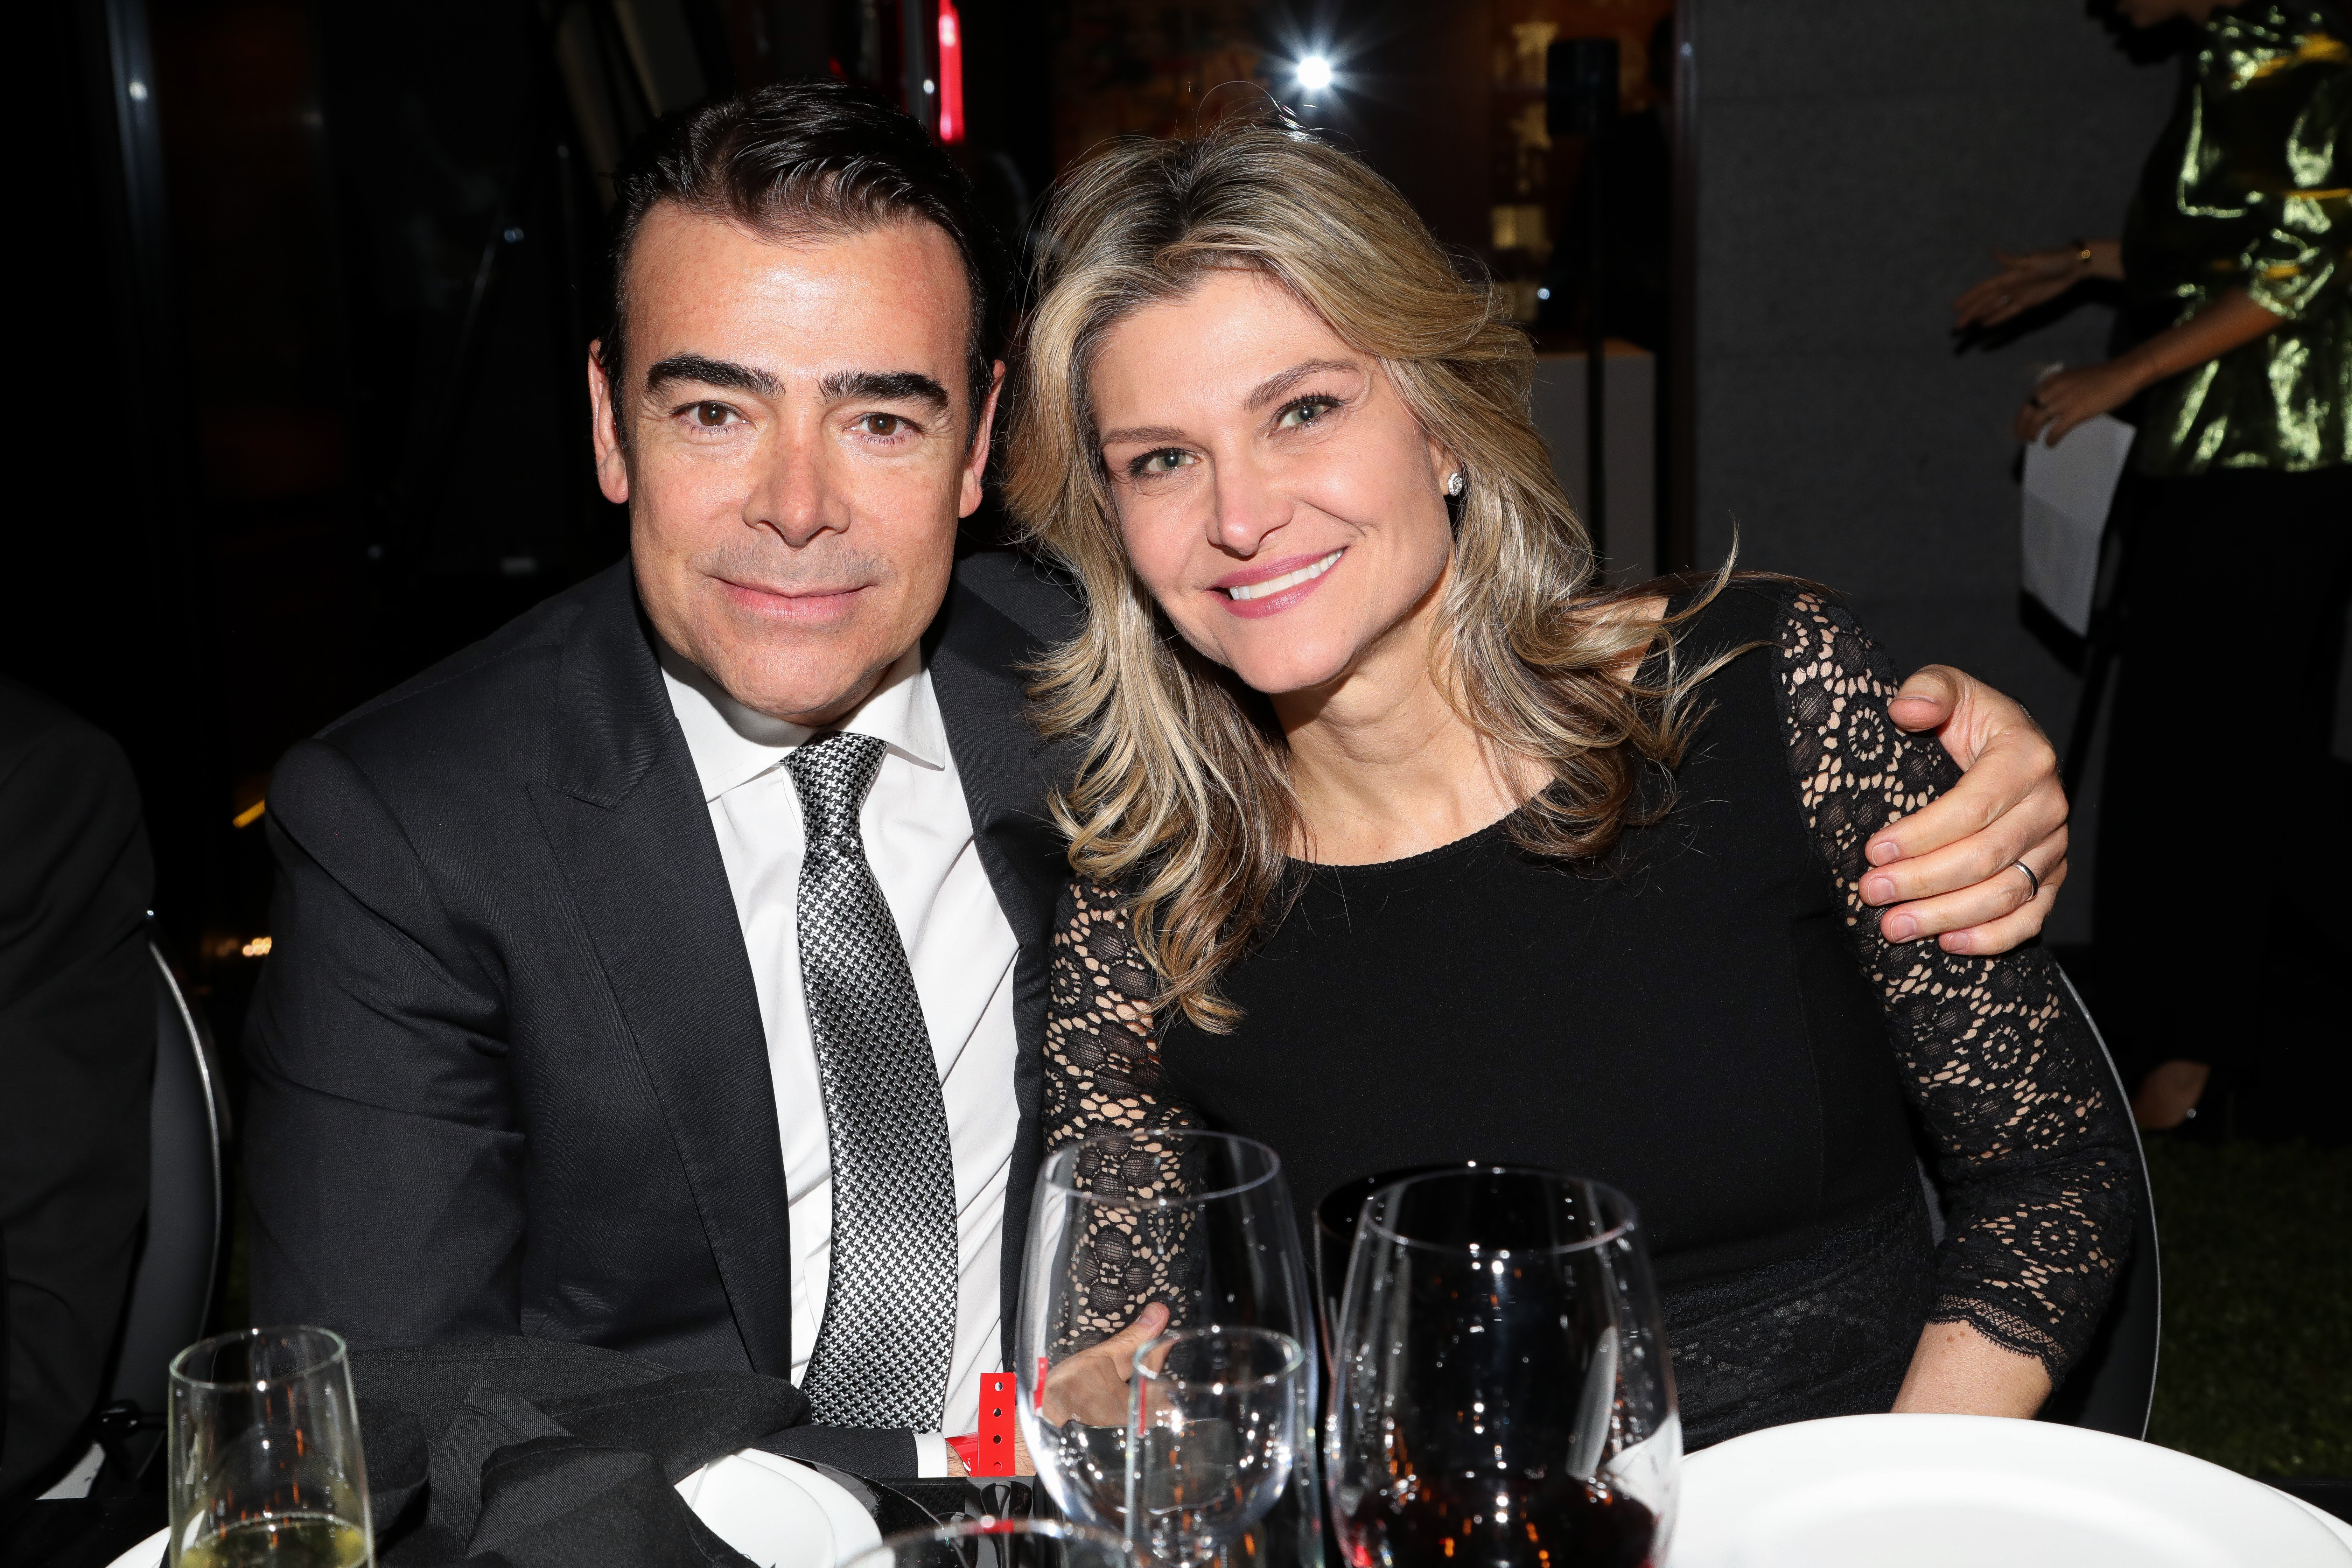 Tono Mauri poses alongside his wife Carla Aleman during the amfAR gala dinner on February 5, 2019 in Mexico City, Mexico | Photo: Getty Images